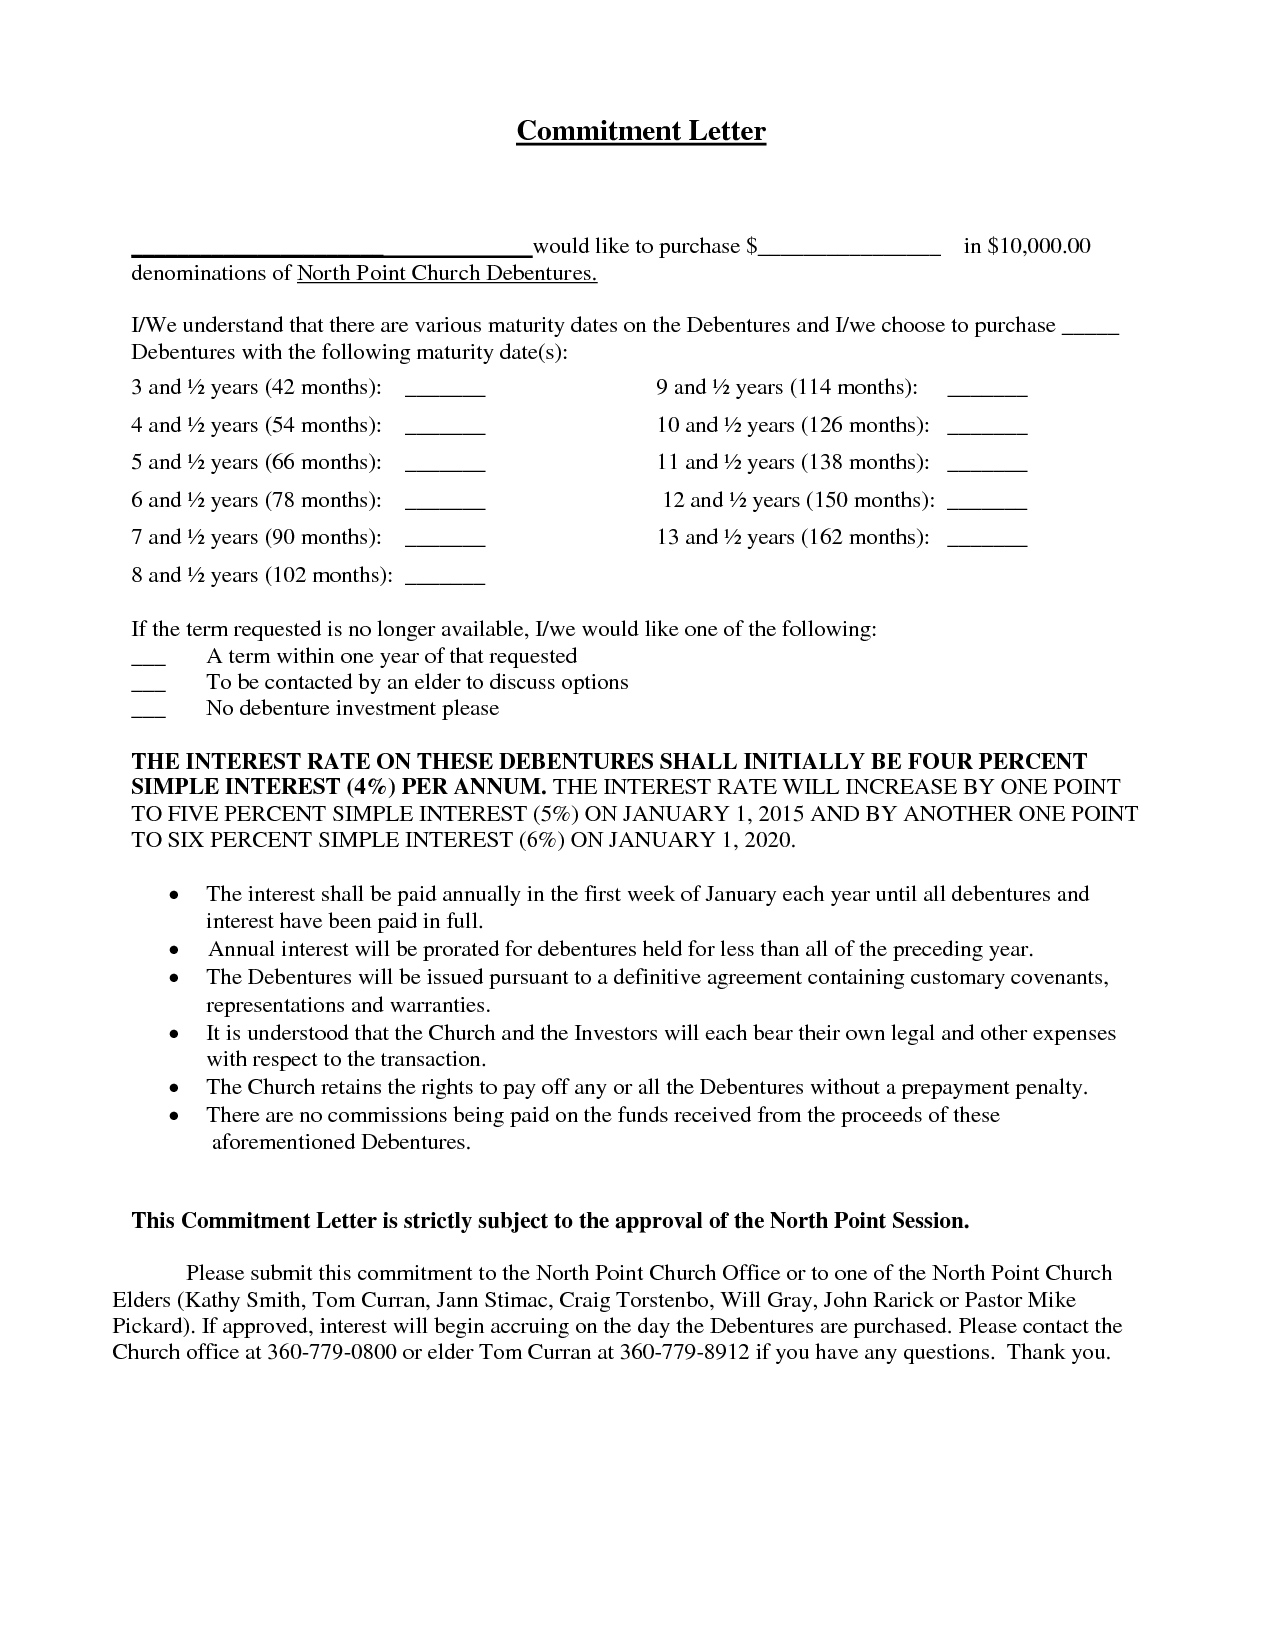 Mortgage Commitment Letter Template - Mitment form Template